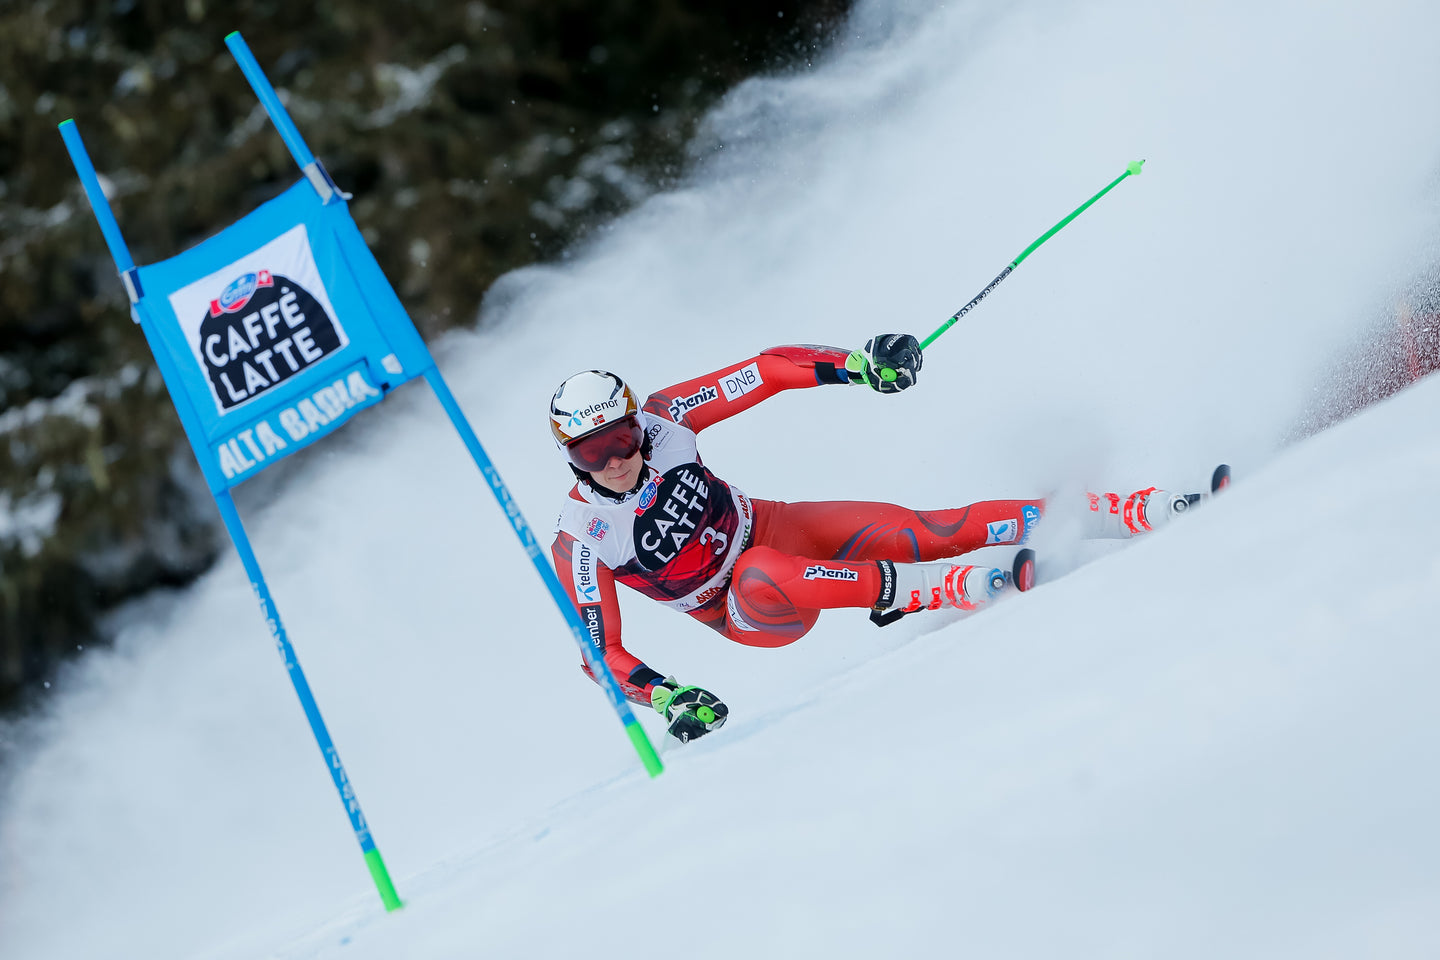 ski racer leaning into a GS turn | buy your ski race gear online at race room skis